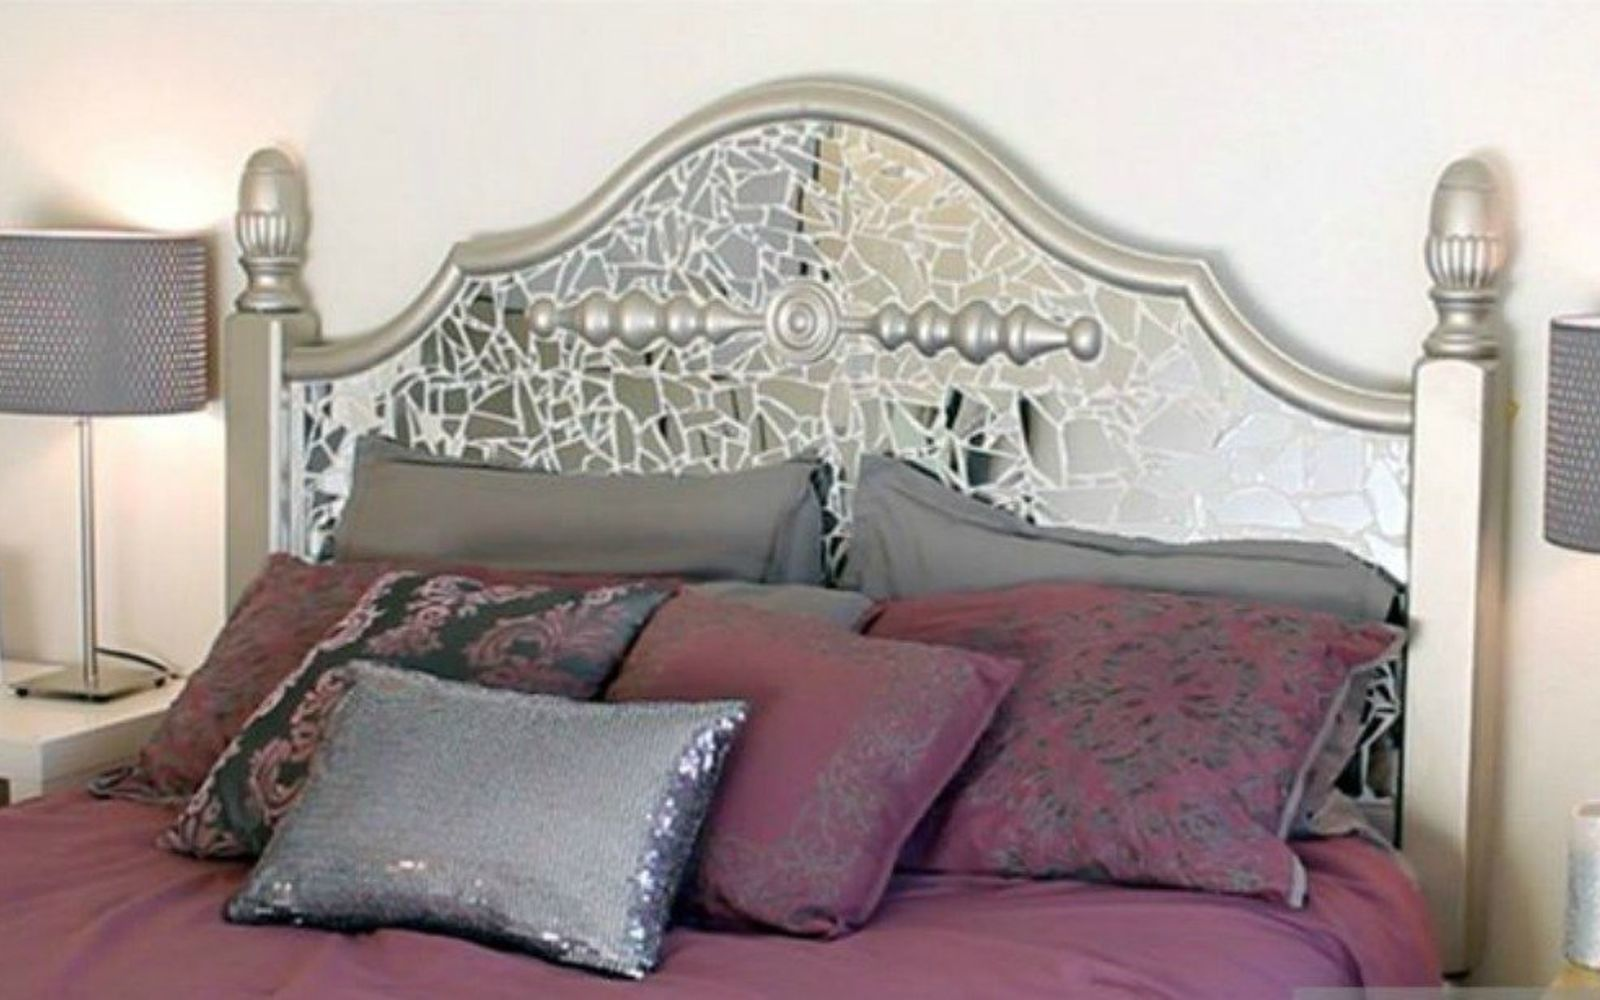 s these are the diy headboard ideas you ve been dreaming of, This mosaic mirror masterpiece